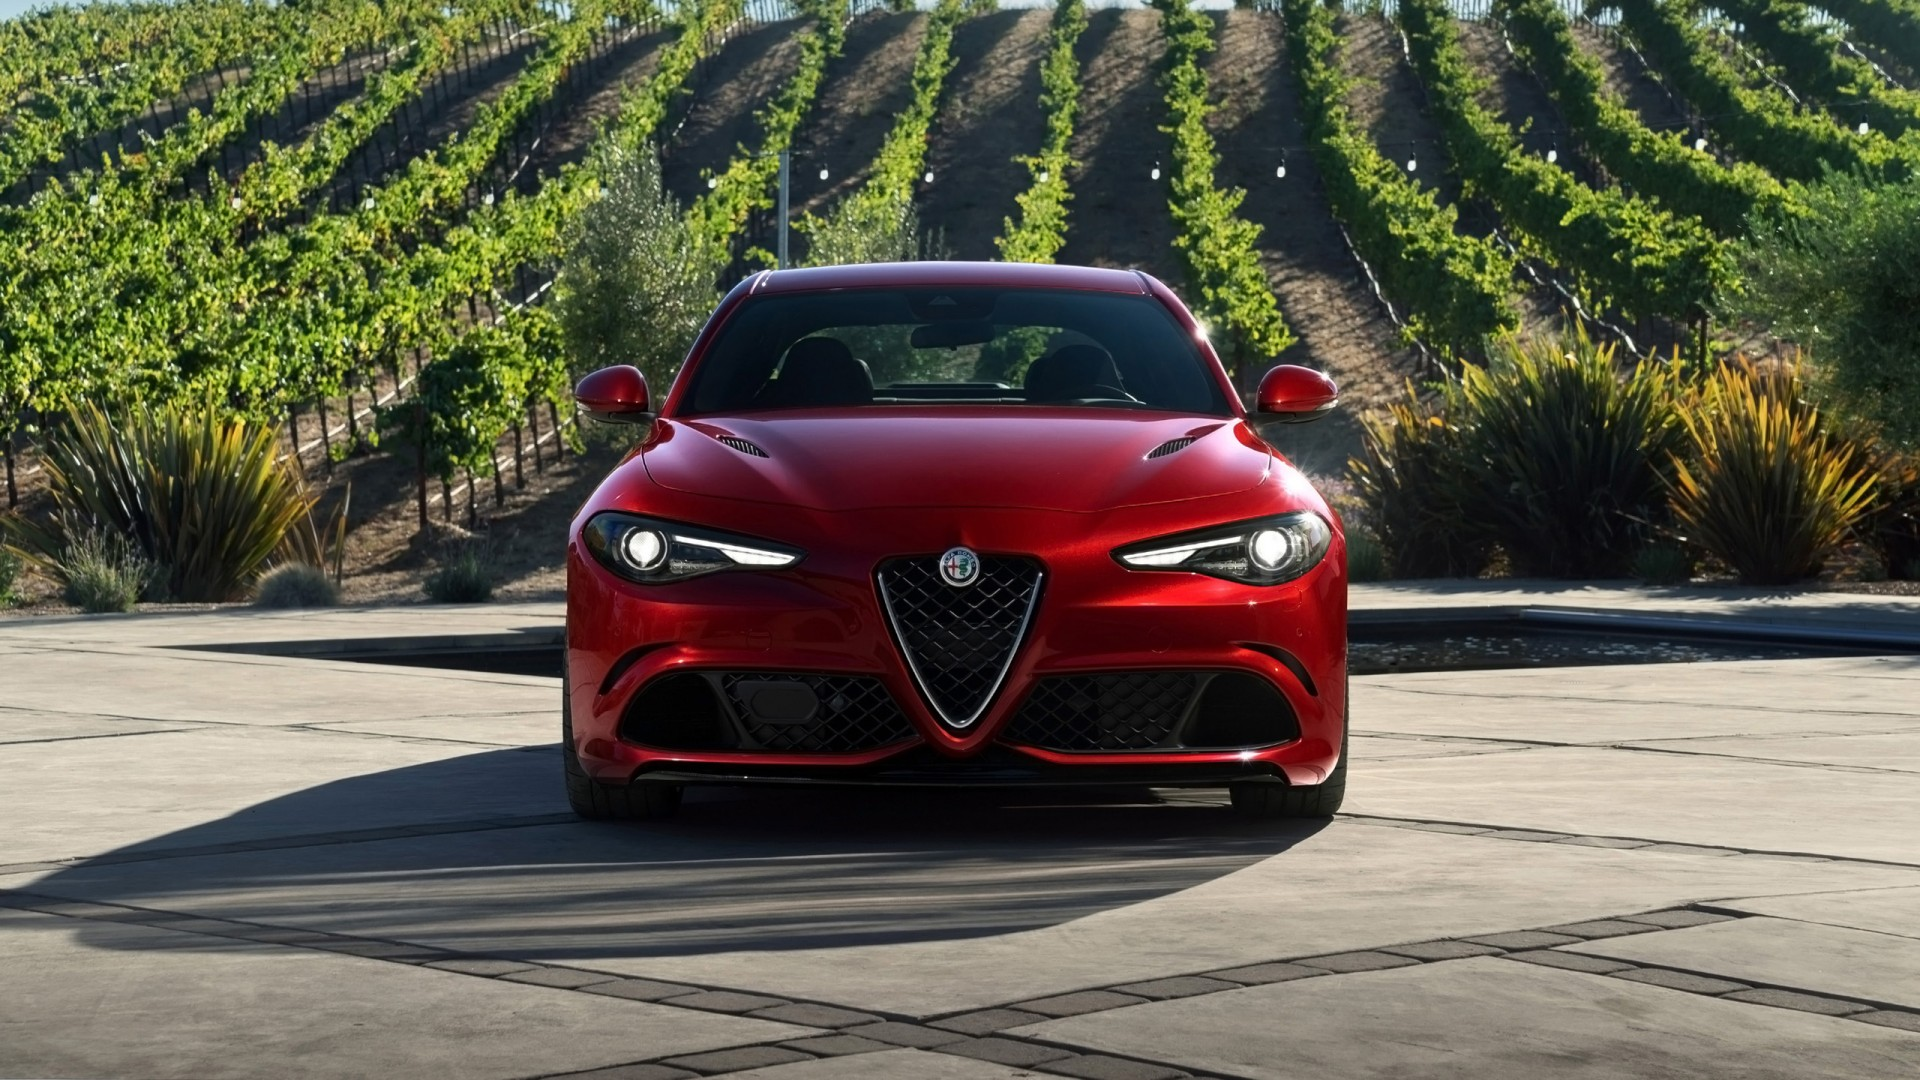 Alfa Romeo Giulia >> 2017 Alfa Romeo Giulia Quadrifoglio 3 Wallpaper | HD Car Wallpapers | ID #7296